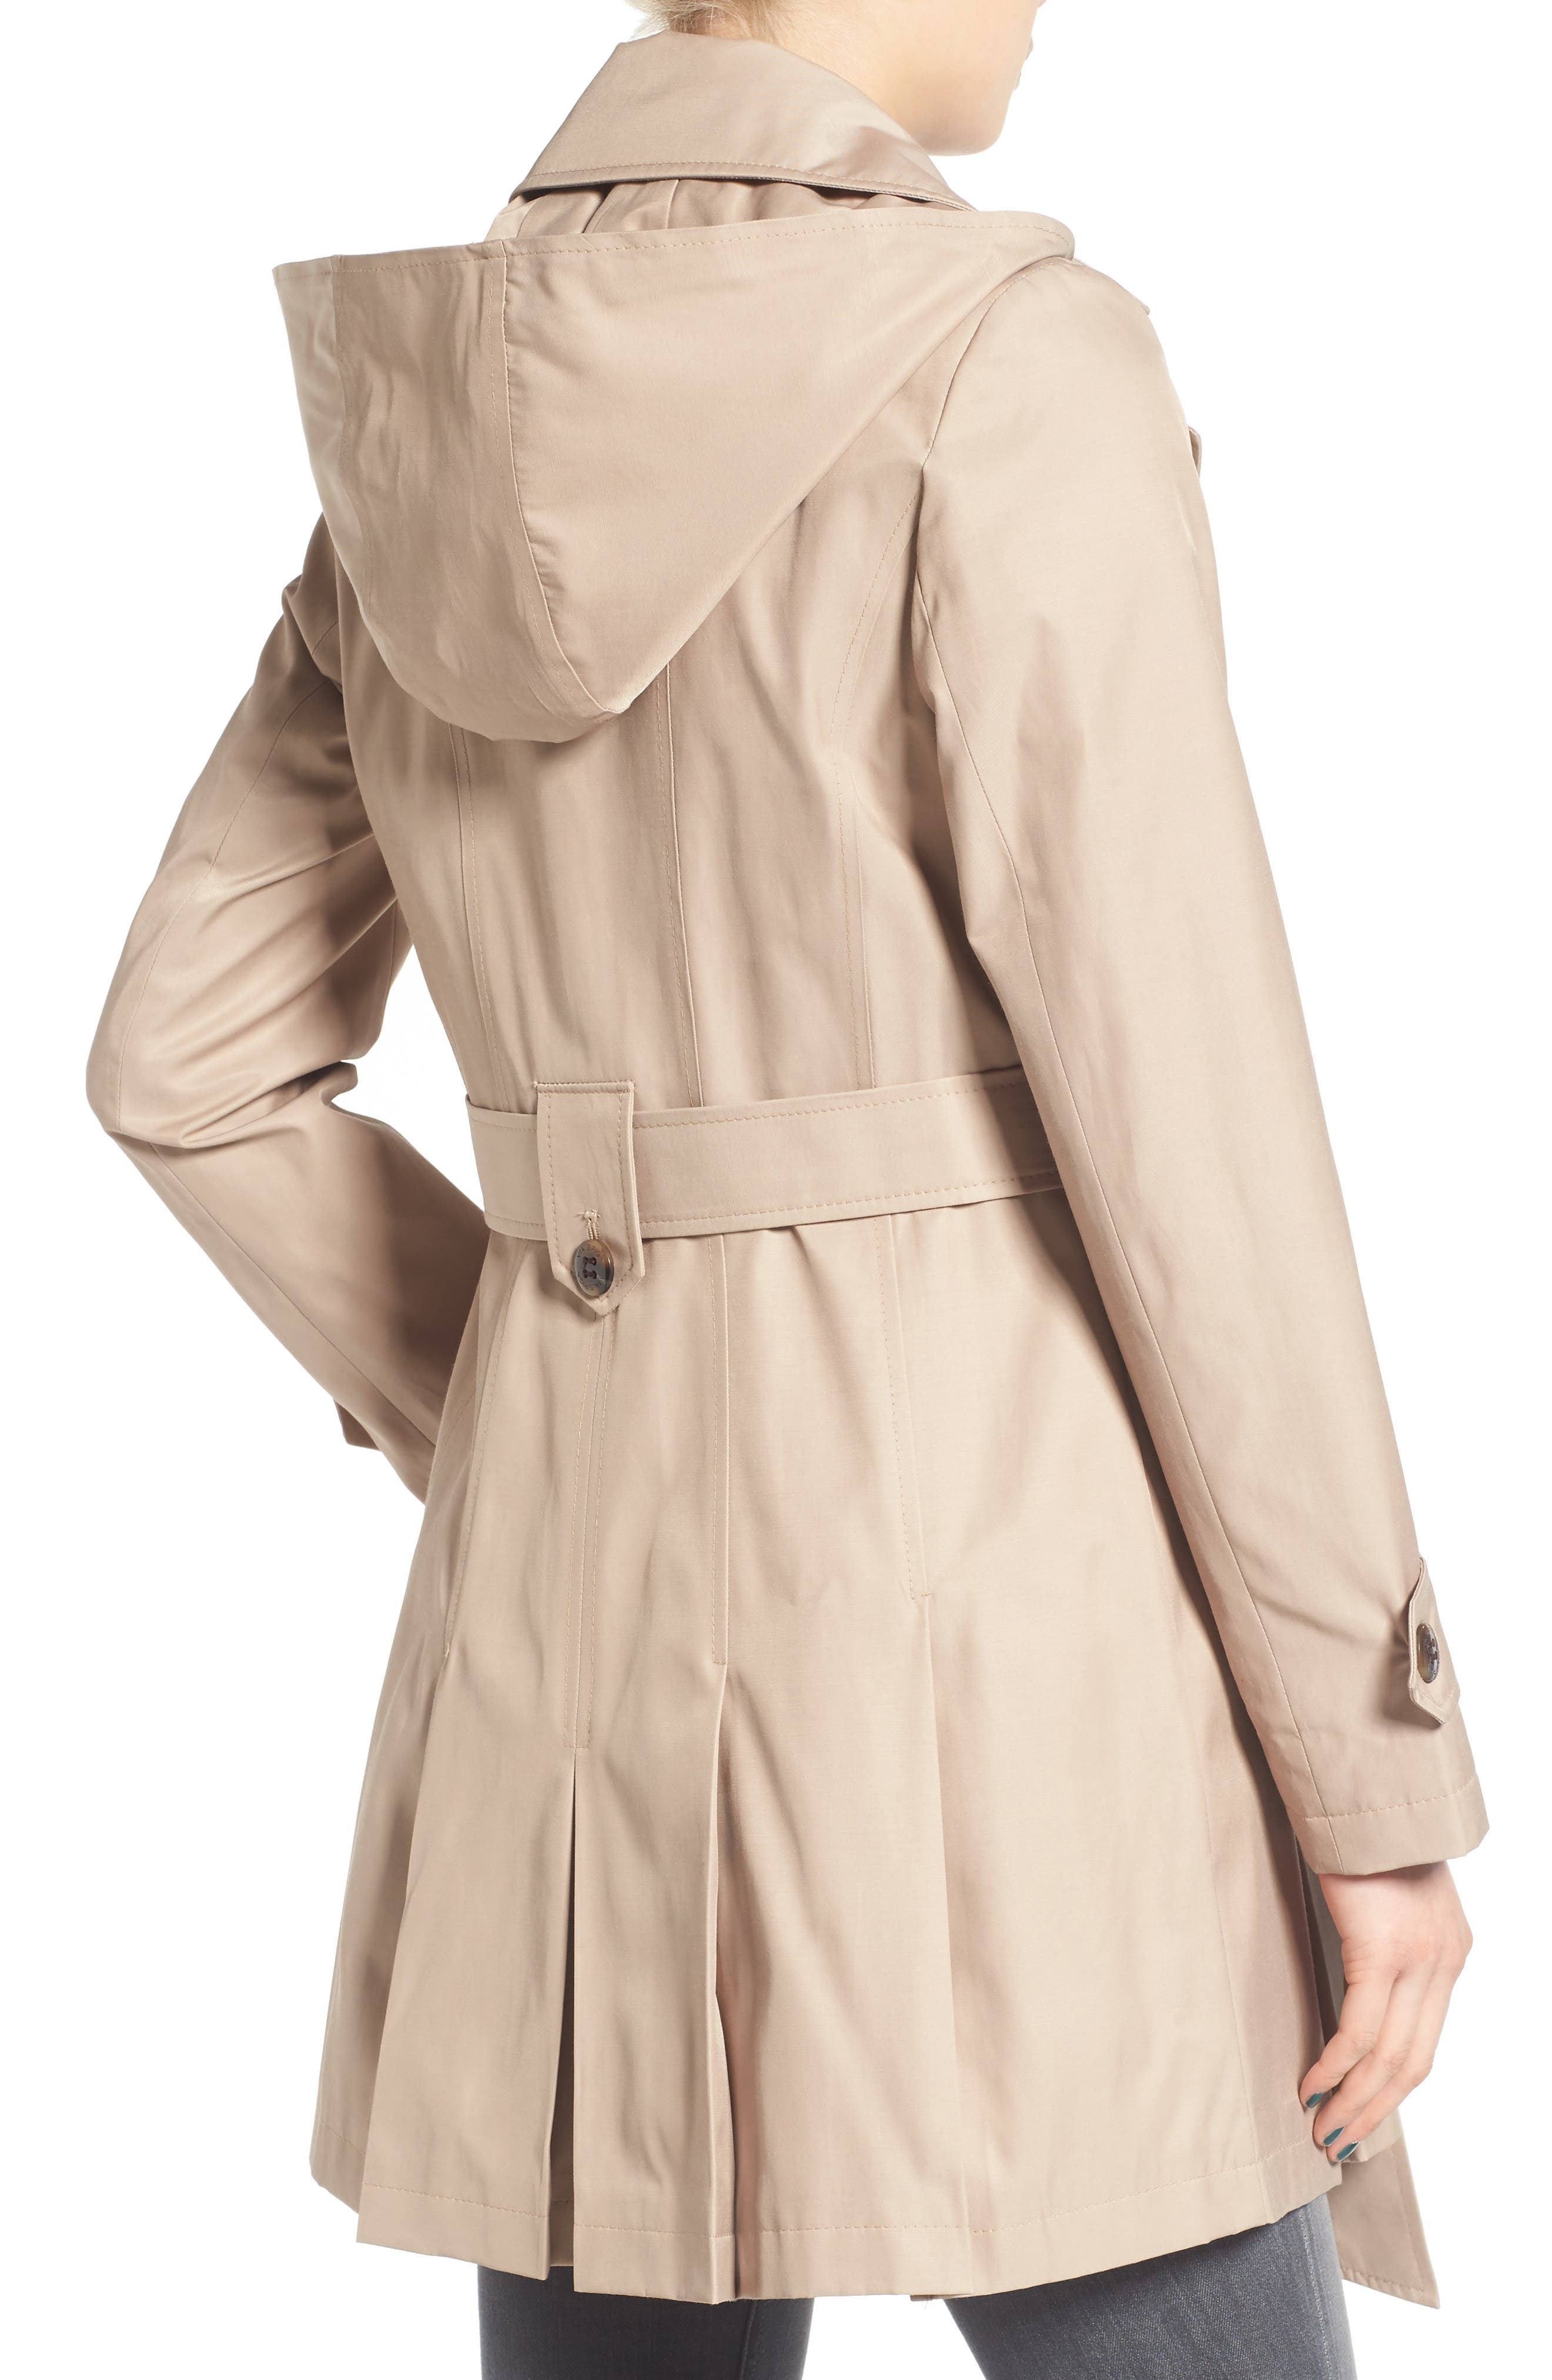 'Scarpa' Hooded Single Breasted Trench Coat,                             Alternate thumbnail 2, color,                             257